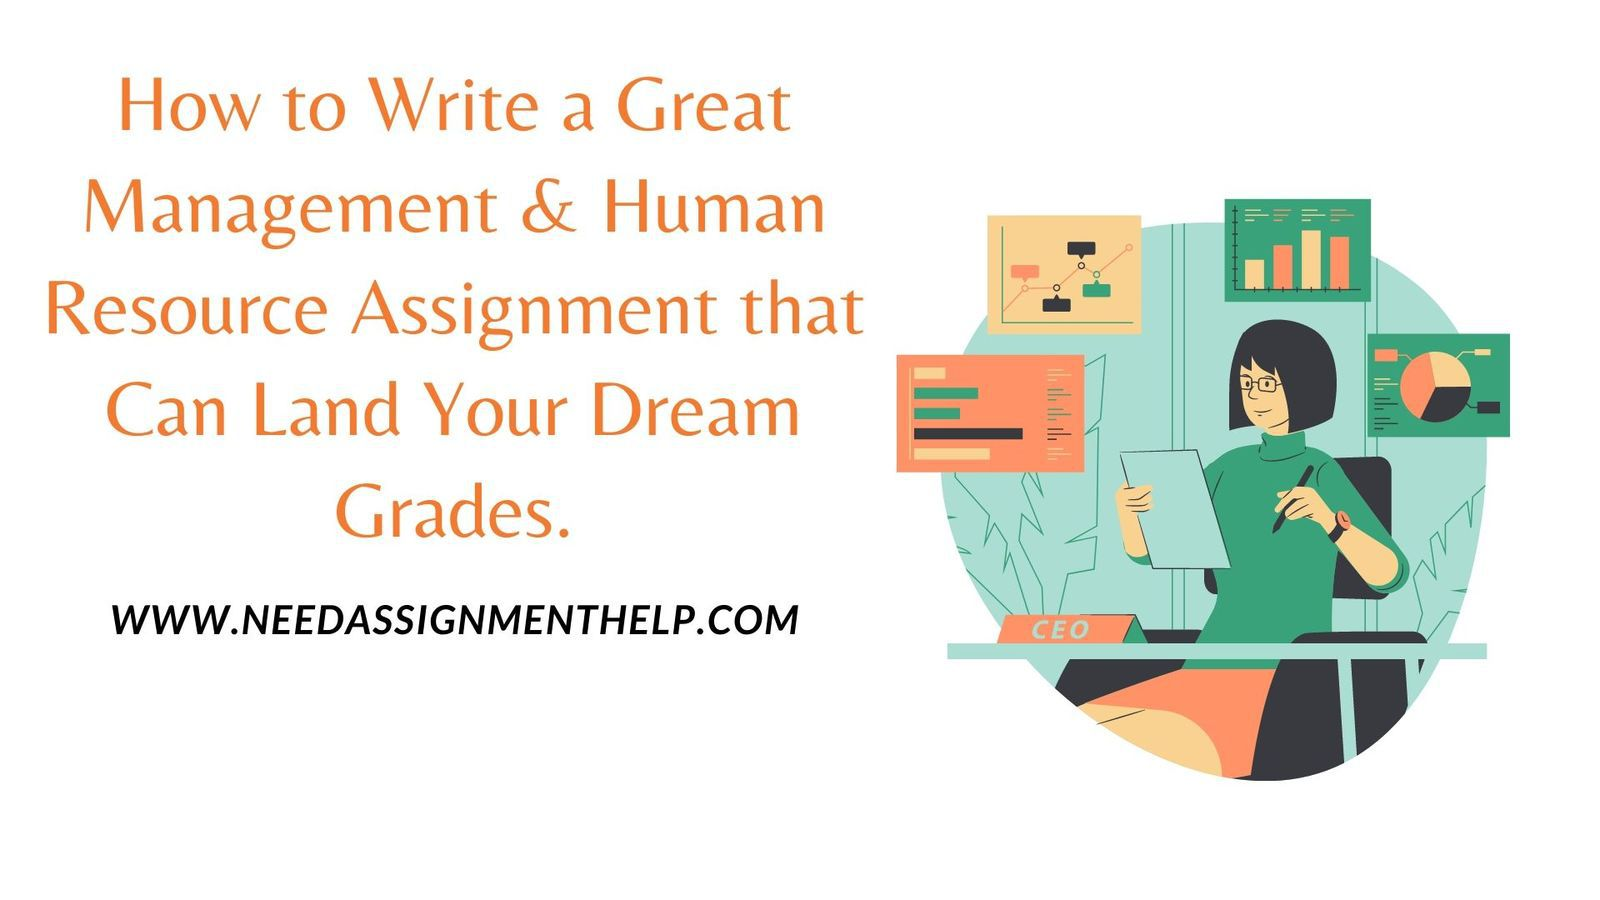 How to Write a Great Management & Human Resource Assignment that Can Land Your Dream Grades. - Need Assignment Help